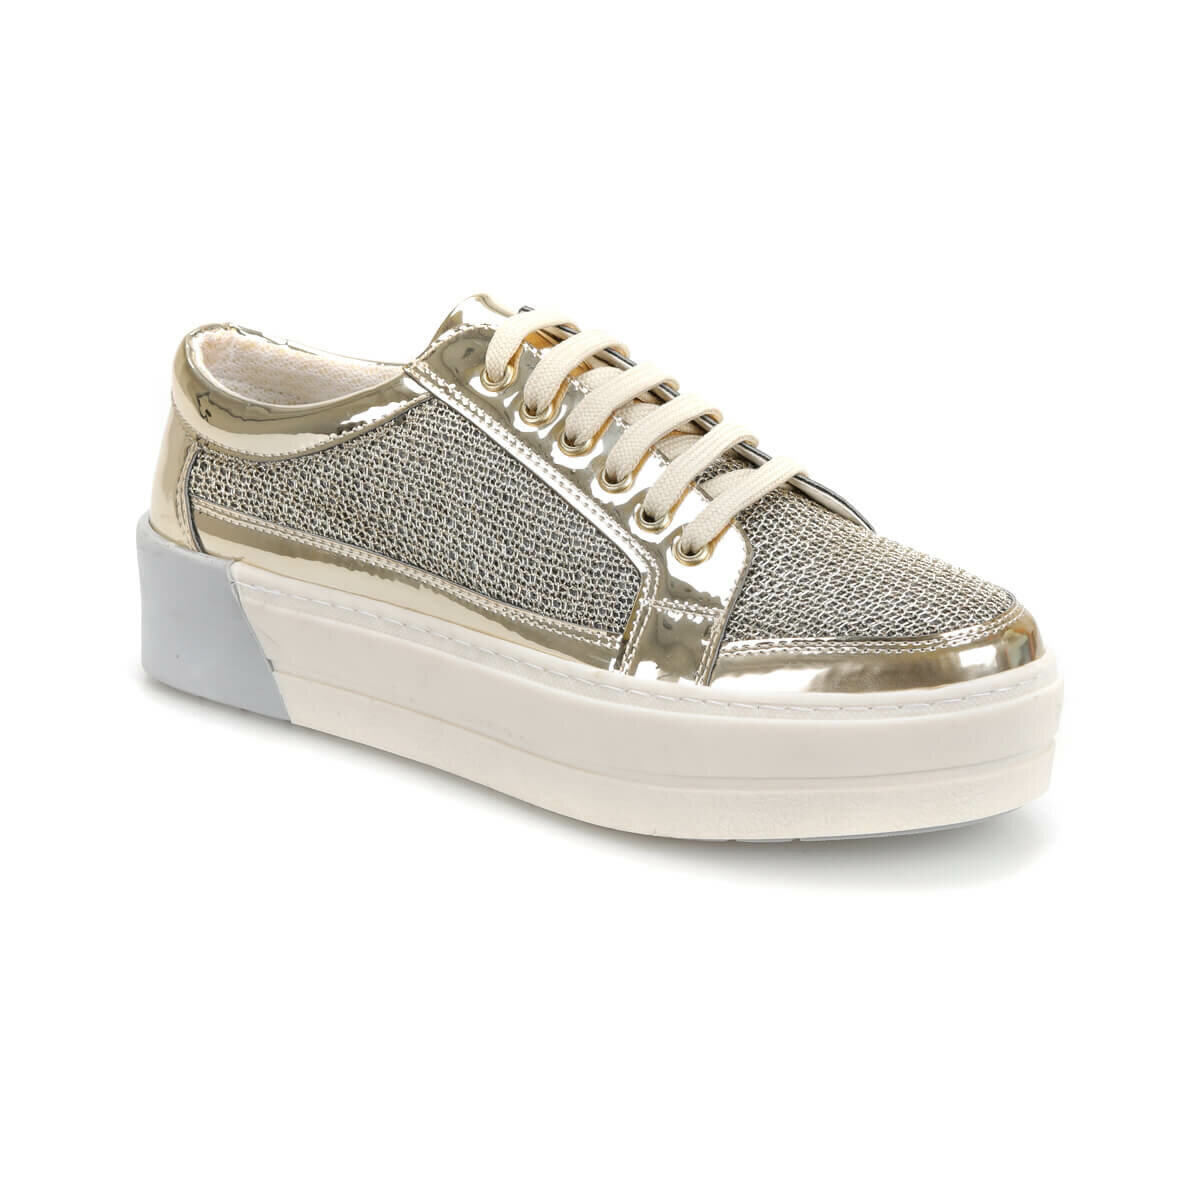 FLO 19S-100 Gold Women 'S Sneaker Shoes BUTIGO